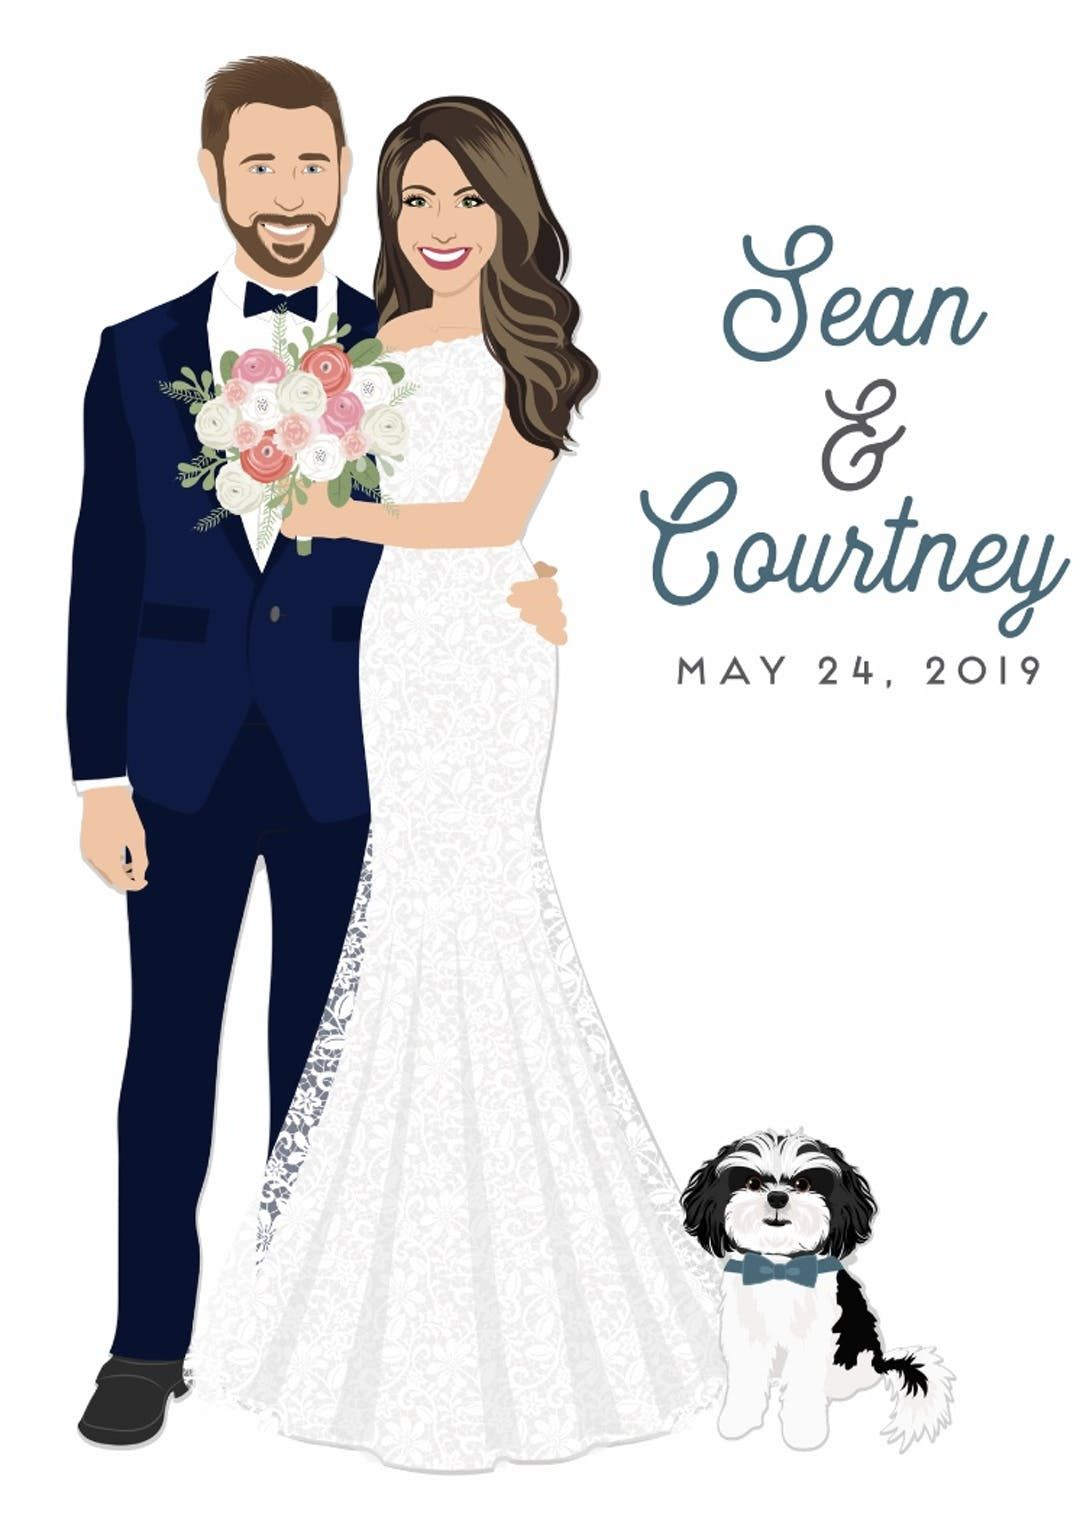 Wedding Guest Book Alternative With Couple Portrait The Penny Bridal Shower Guest Book Wedding Guest Book Wedding Guest Book Alternatives [ 1540 x 1080 Pixel ]